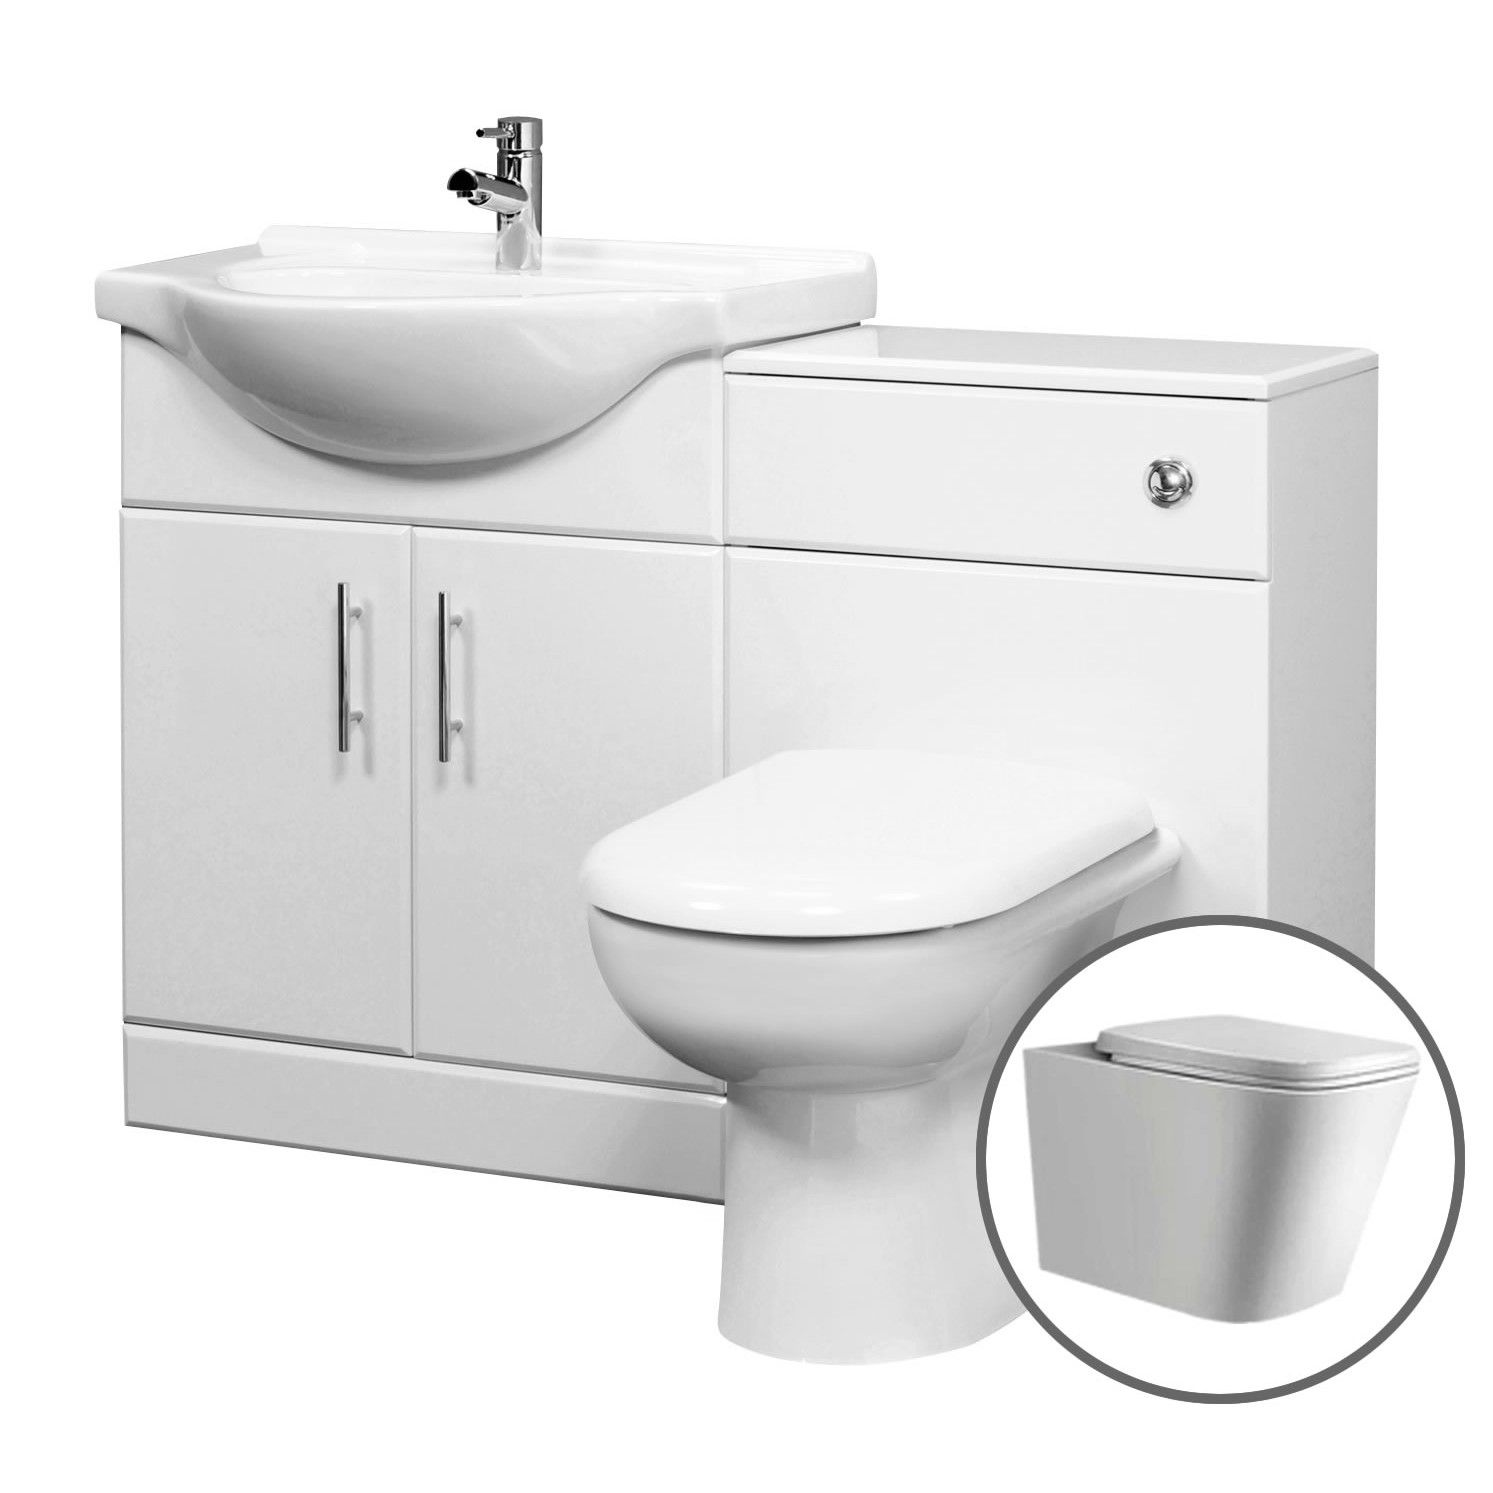 Tecaz bathroom suites - Tudelia Fitted Bathroom Furniture 1015mm Gloss White Suite Unit With Toilet And Basin